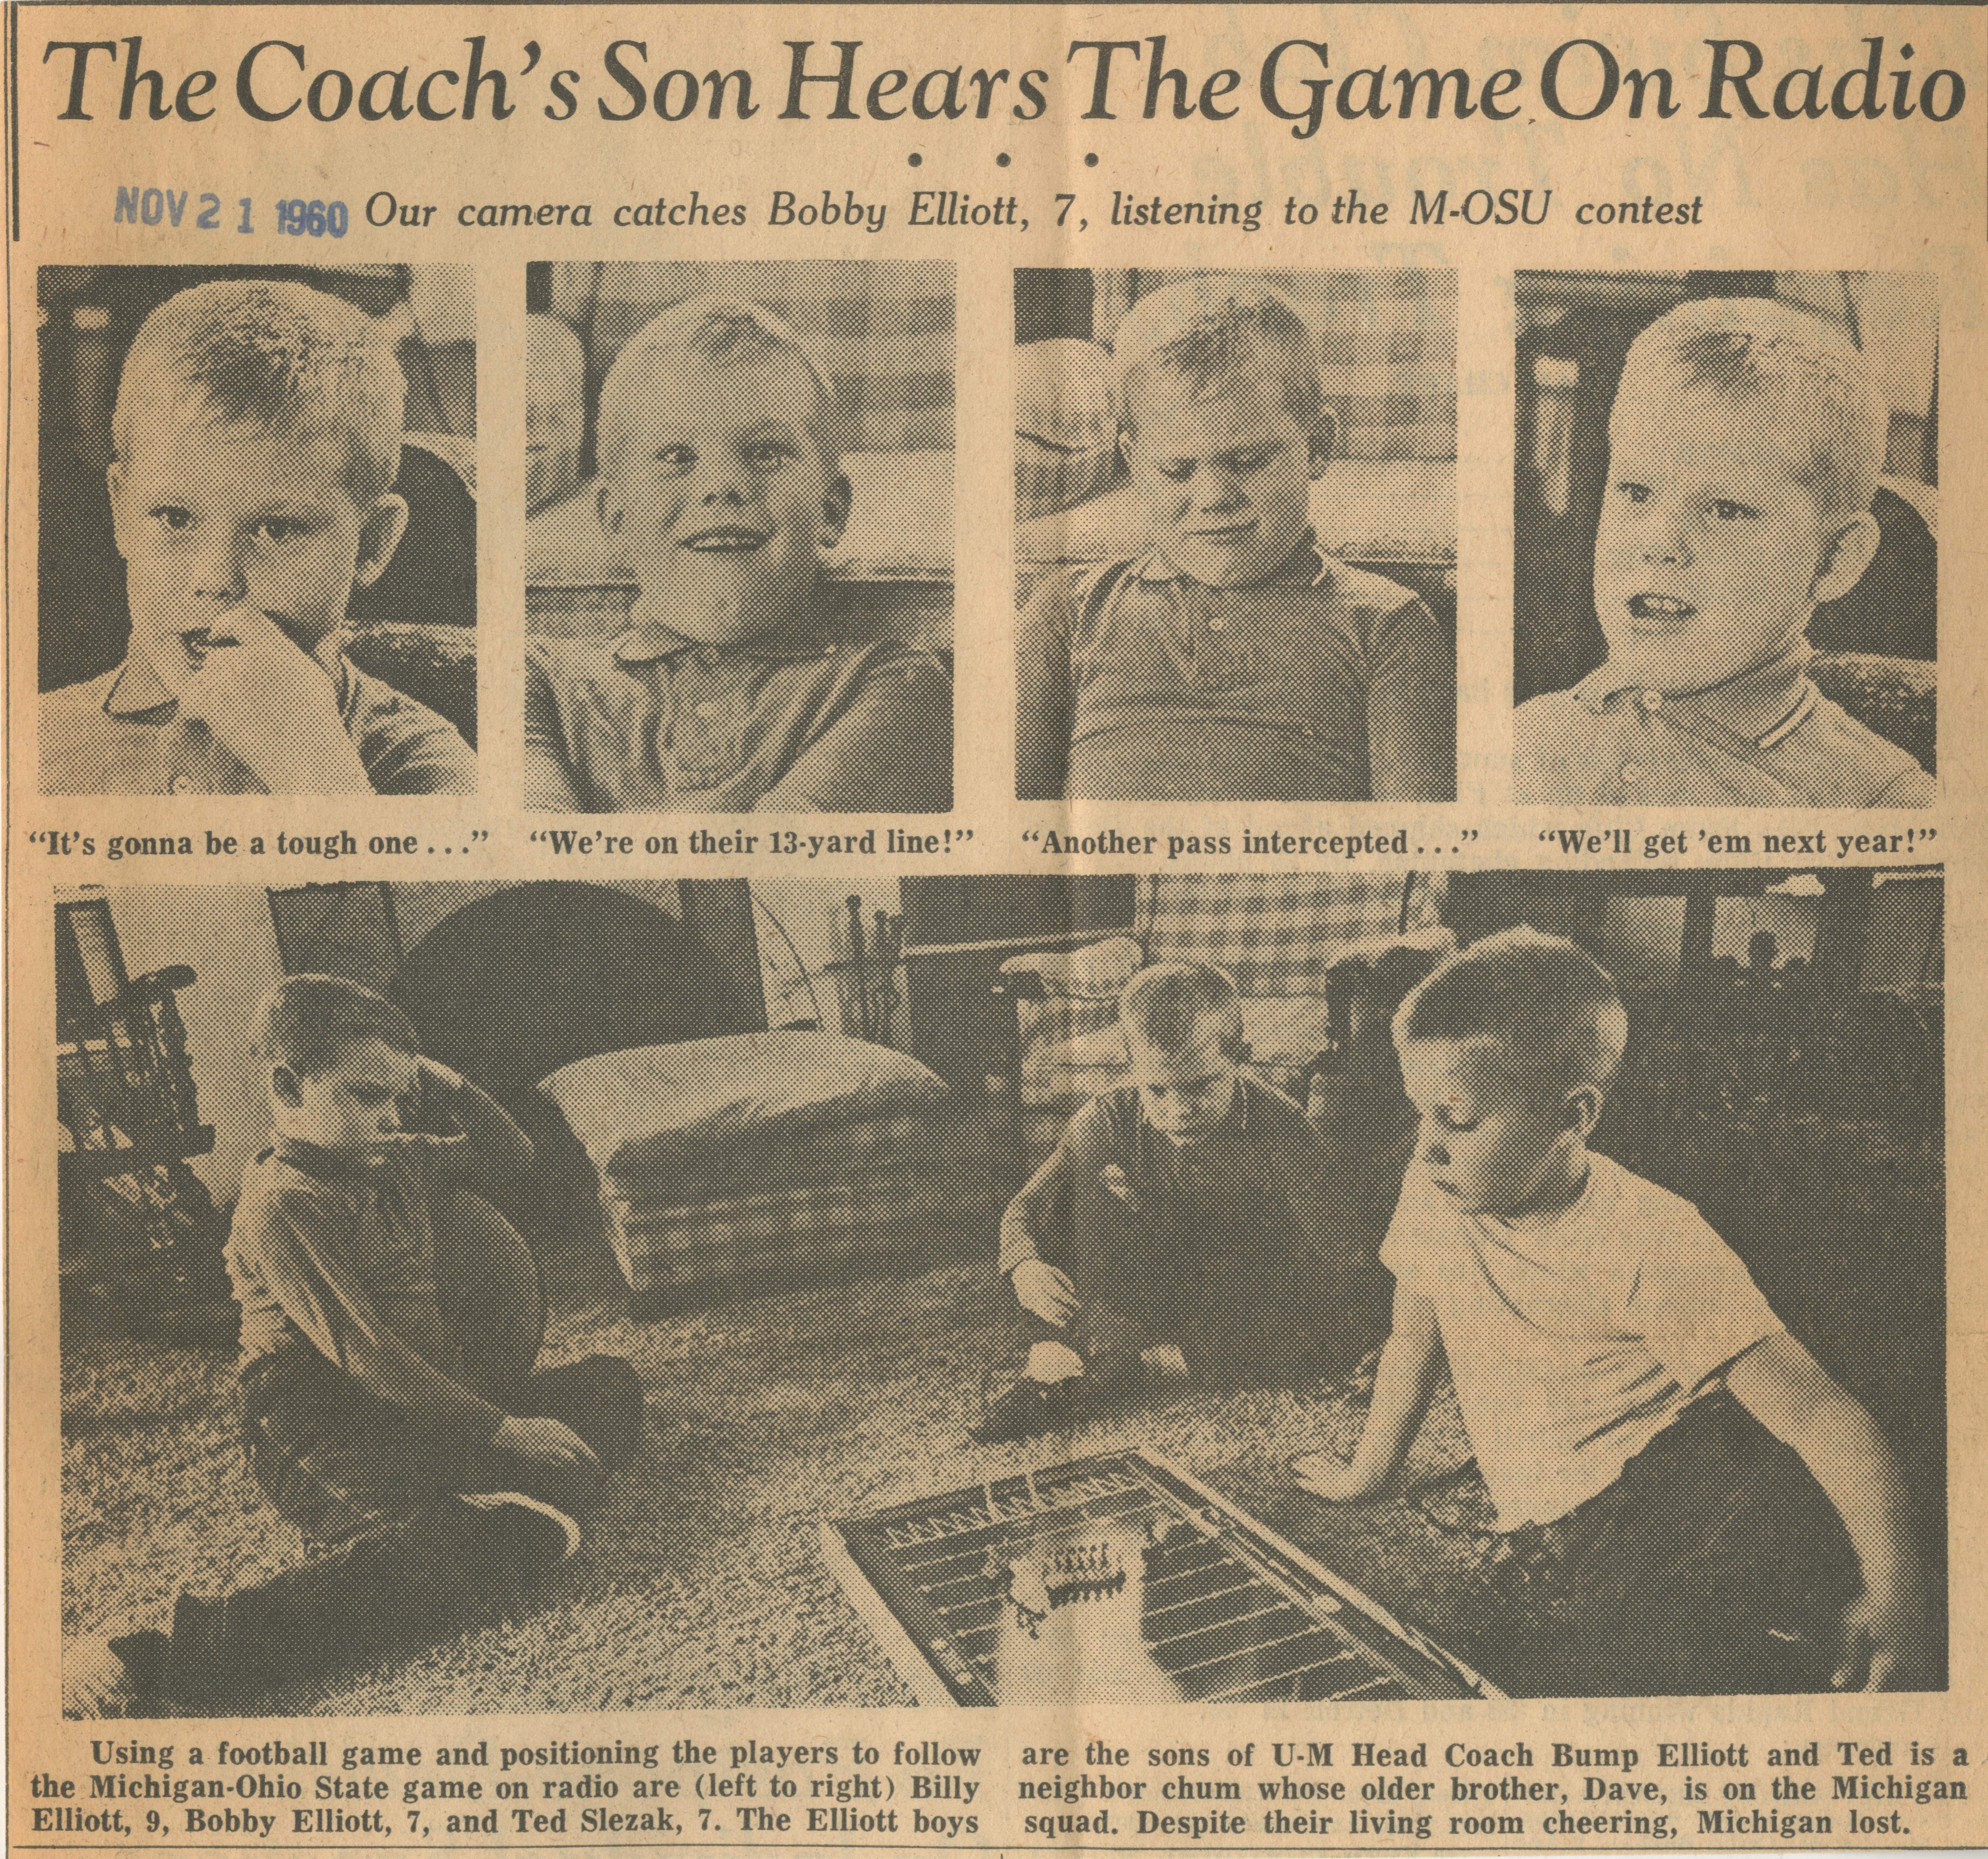 The Coach's Son Hears The Game On Radio image